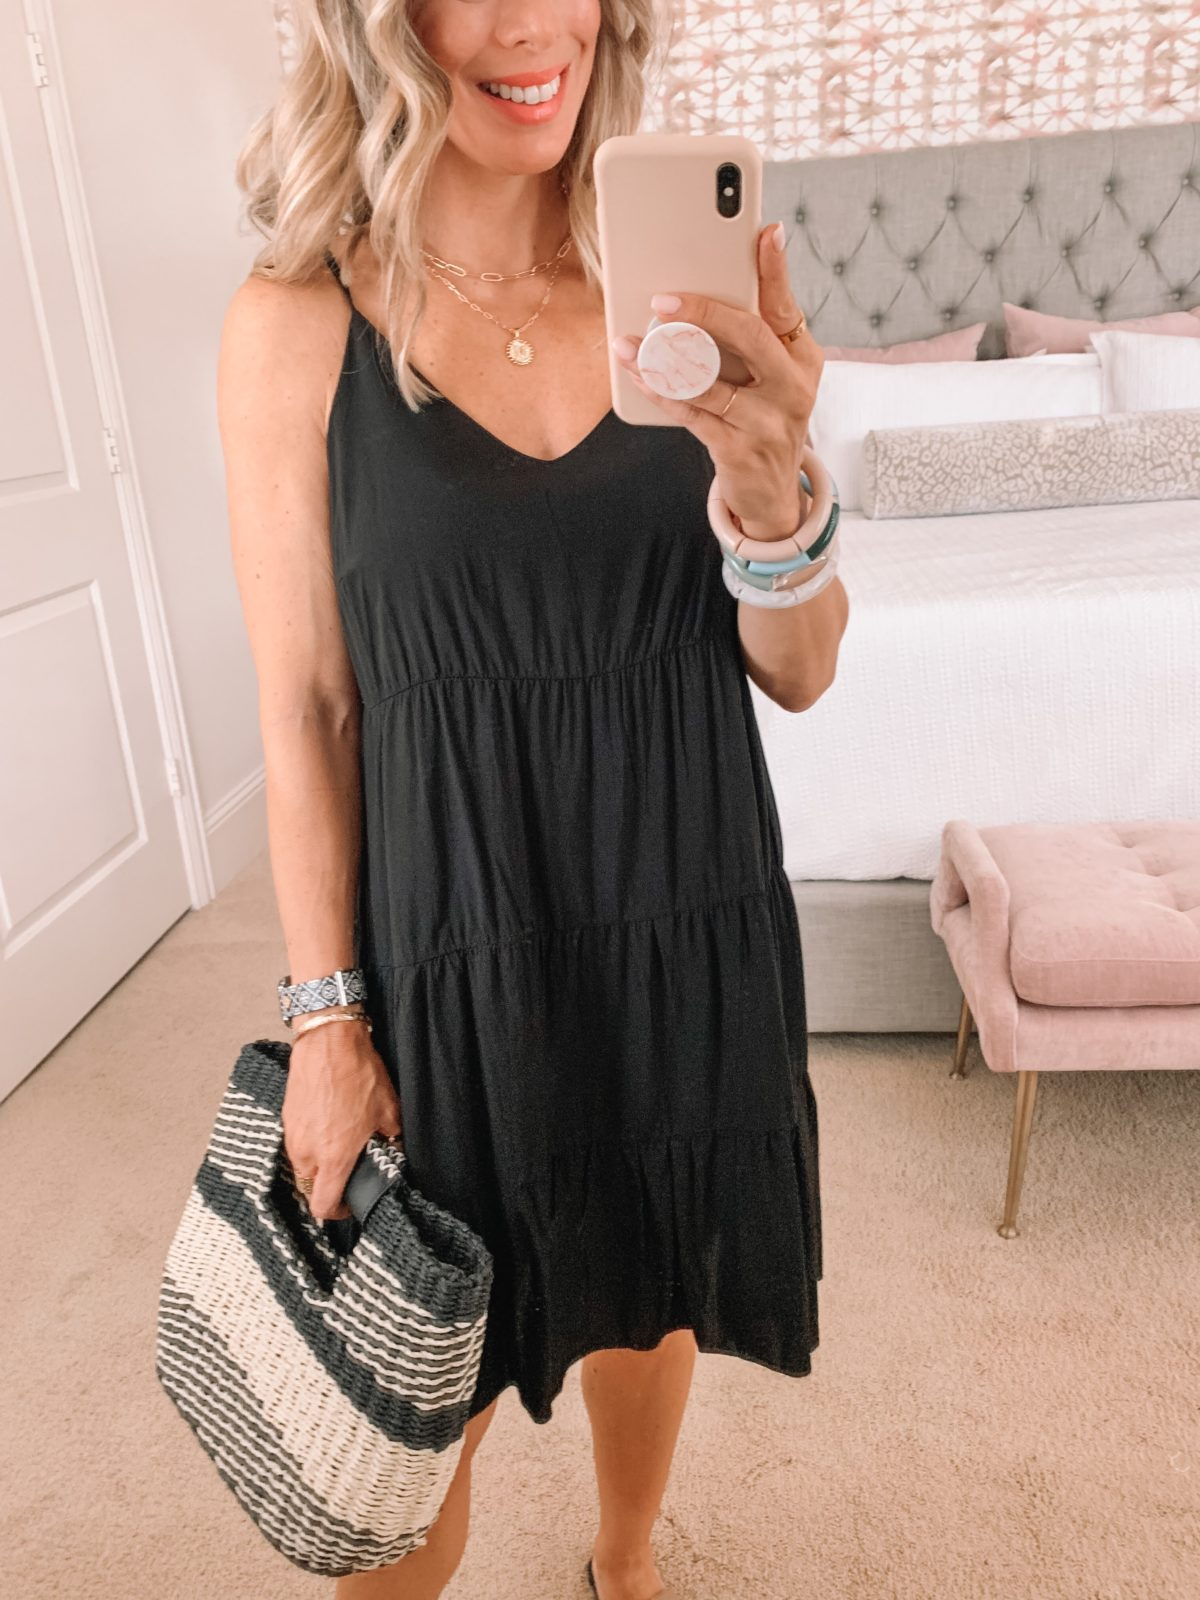 Amazon Fashion Faves, Black Tiered Shift Dress and Woven Clutch